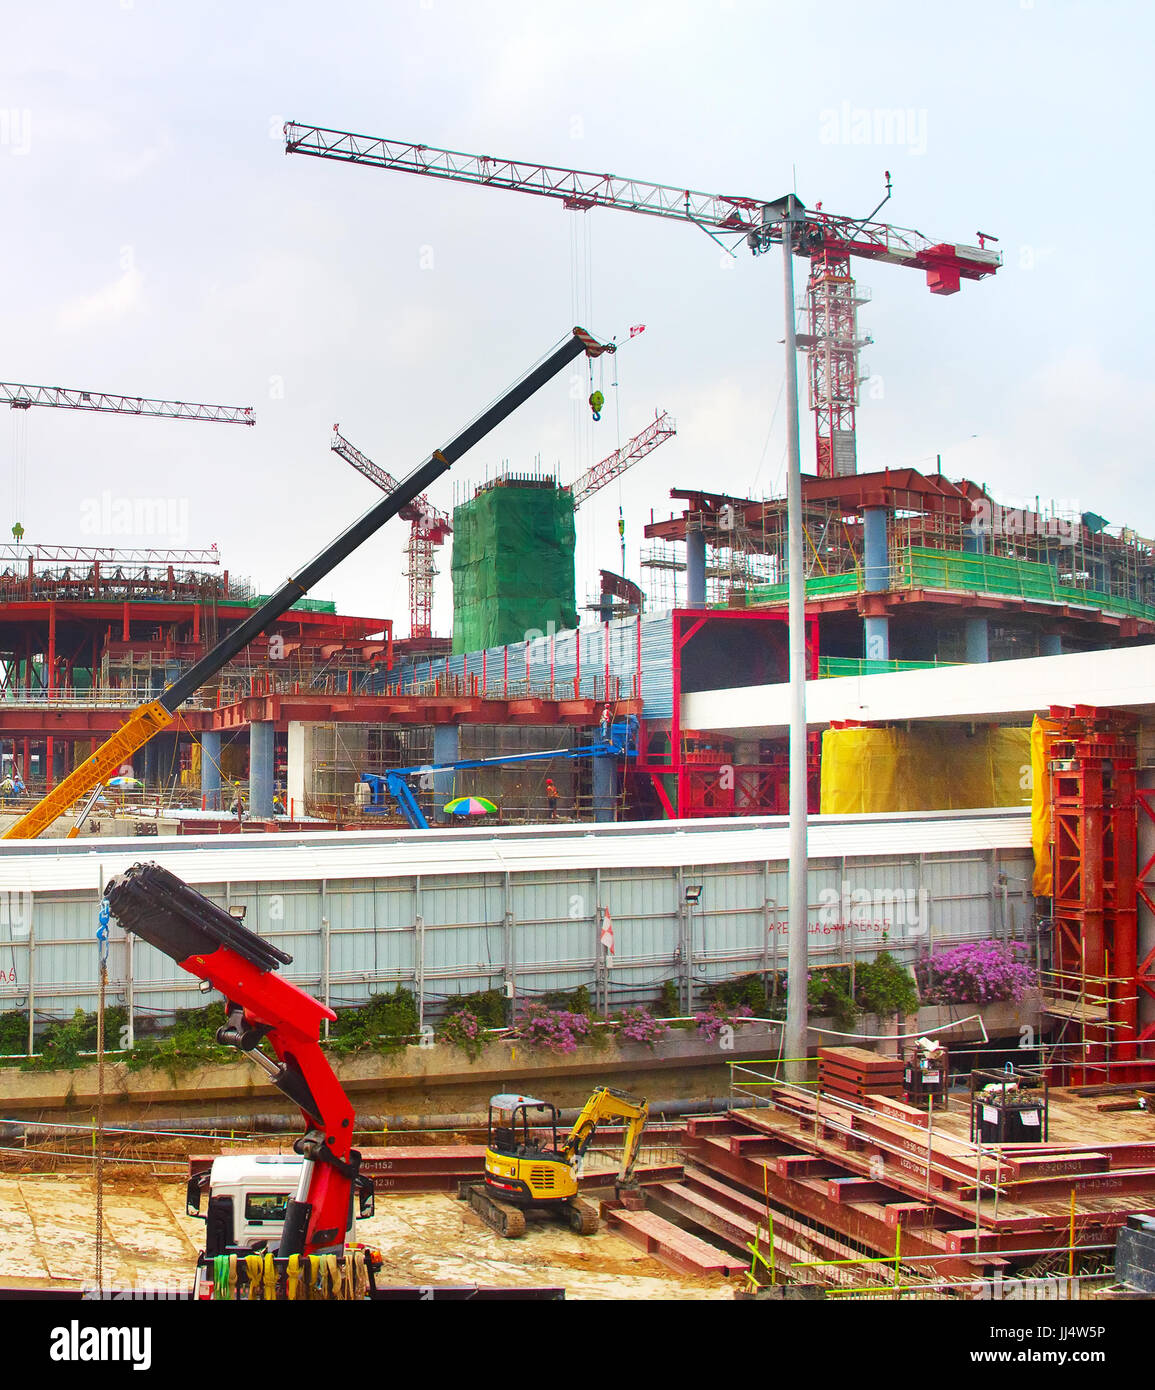 Work in progress at a construction site of a modern airport terminal. Singapore - Stock Image